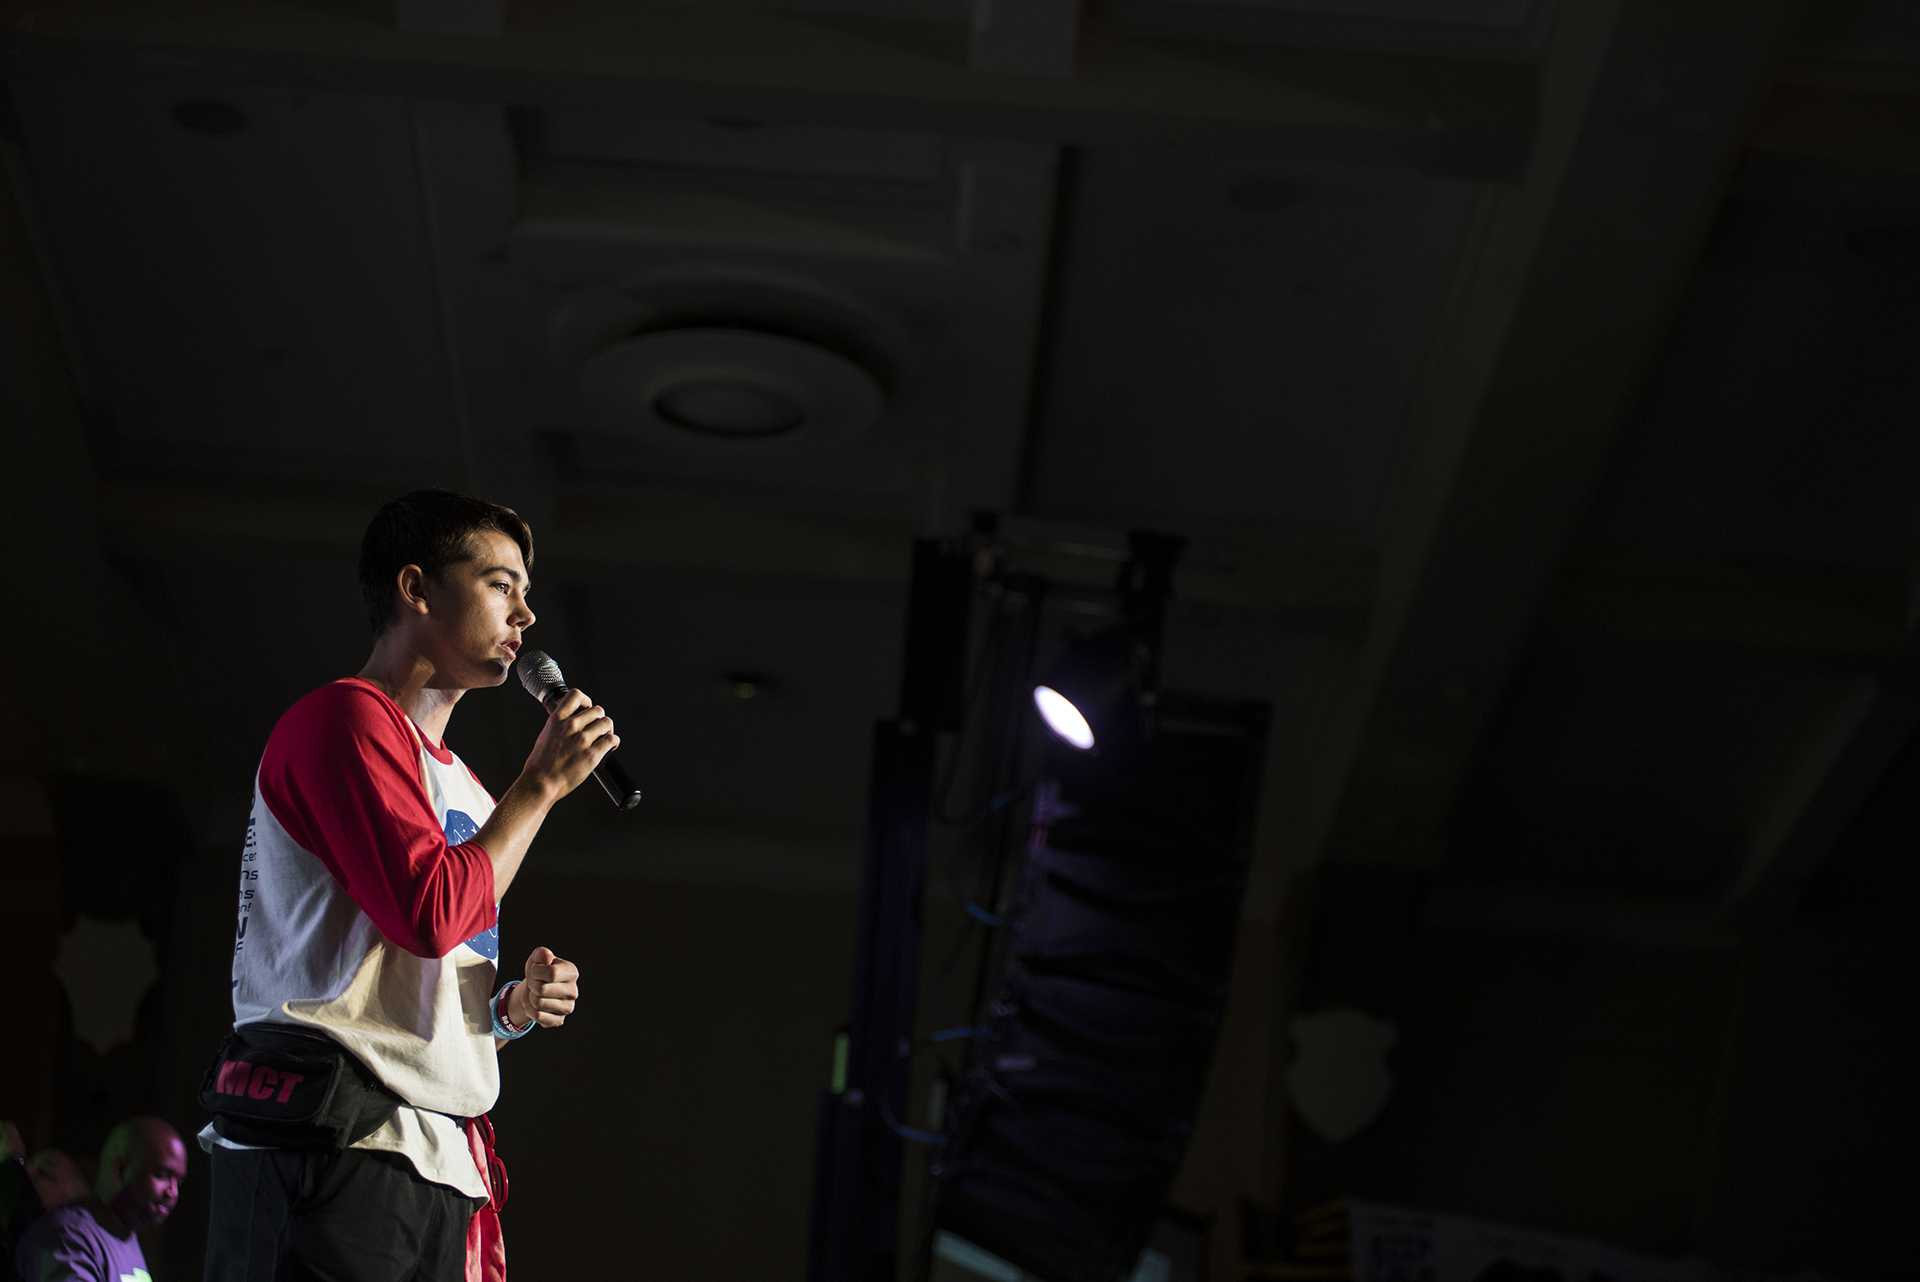 Dillyn Mumme, a survivor of leukemia, speaks to DM participants during the In the Limelight Talent Show at UI Dance Marathon 24 inside IMU on Saturday, Feb. 3, 2018. Mumme obtained a summer internship with the Johnson Space Center in Houston, TX this past year. He spoke about the differences between failing and failure as well as encouraged all members of the crowd to make an impact on the lives of those around them. (Ben Allan Smith/The Daily Iowan)